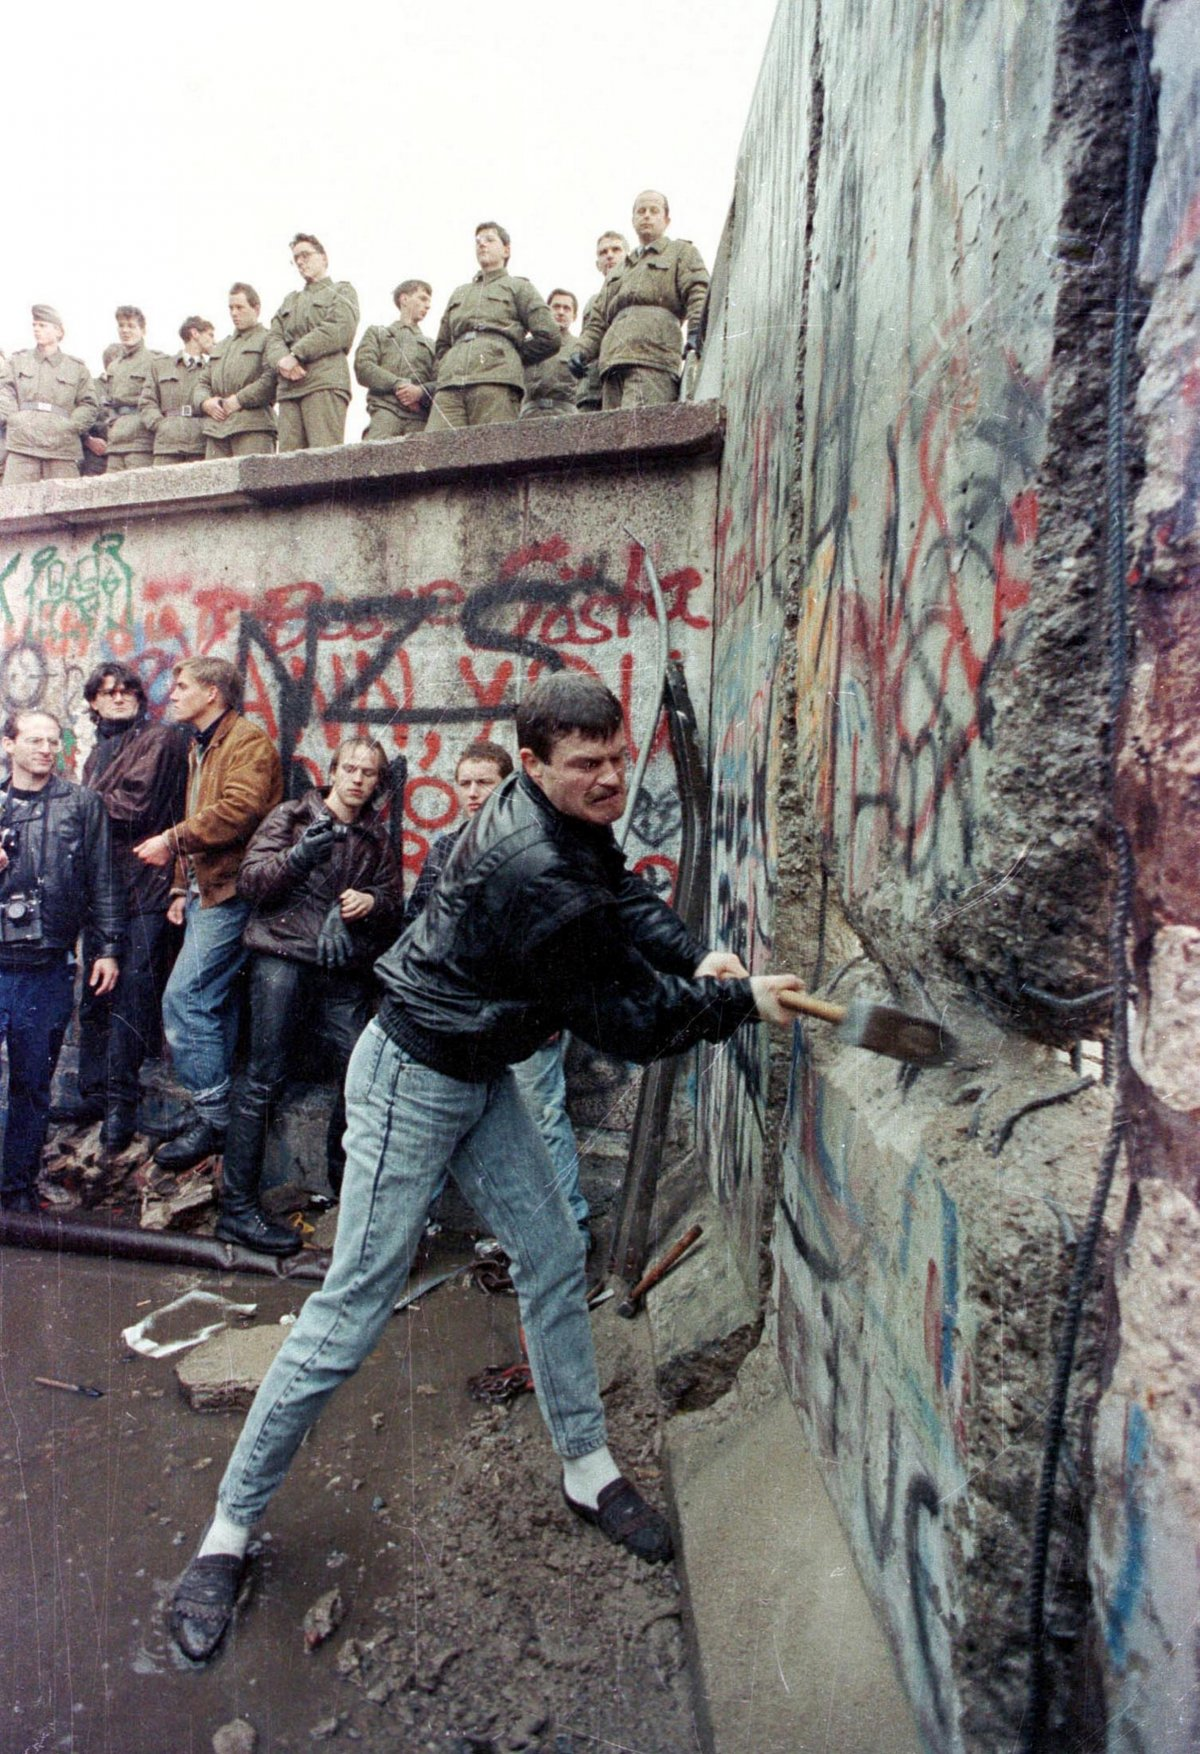 a-demonstrator-pounds-away-at-the-berlin-wall-as-east-berlin-border-guards-look-on-from-above-the-brandenburg-gate-in-berlin-in-november-1989